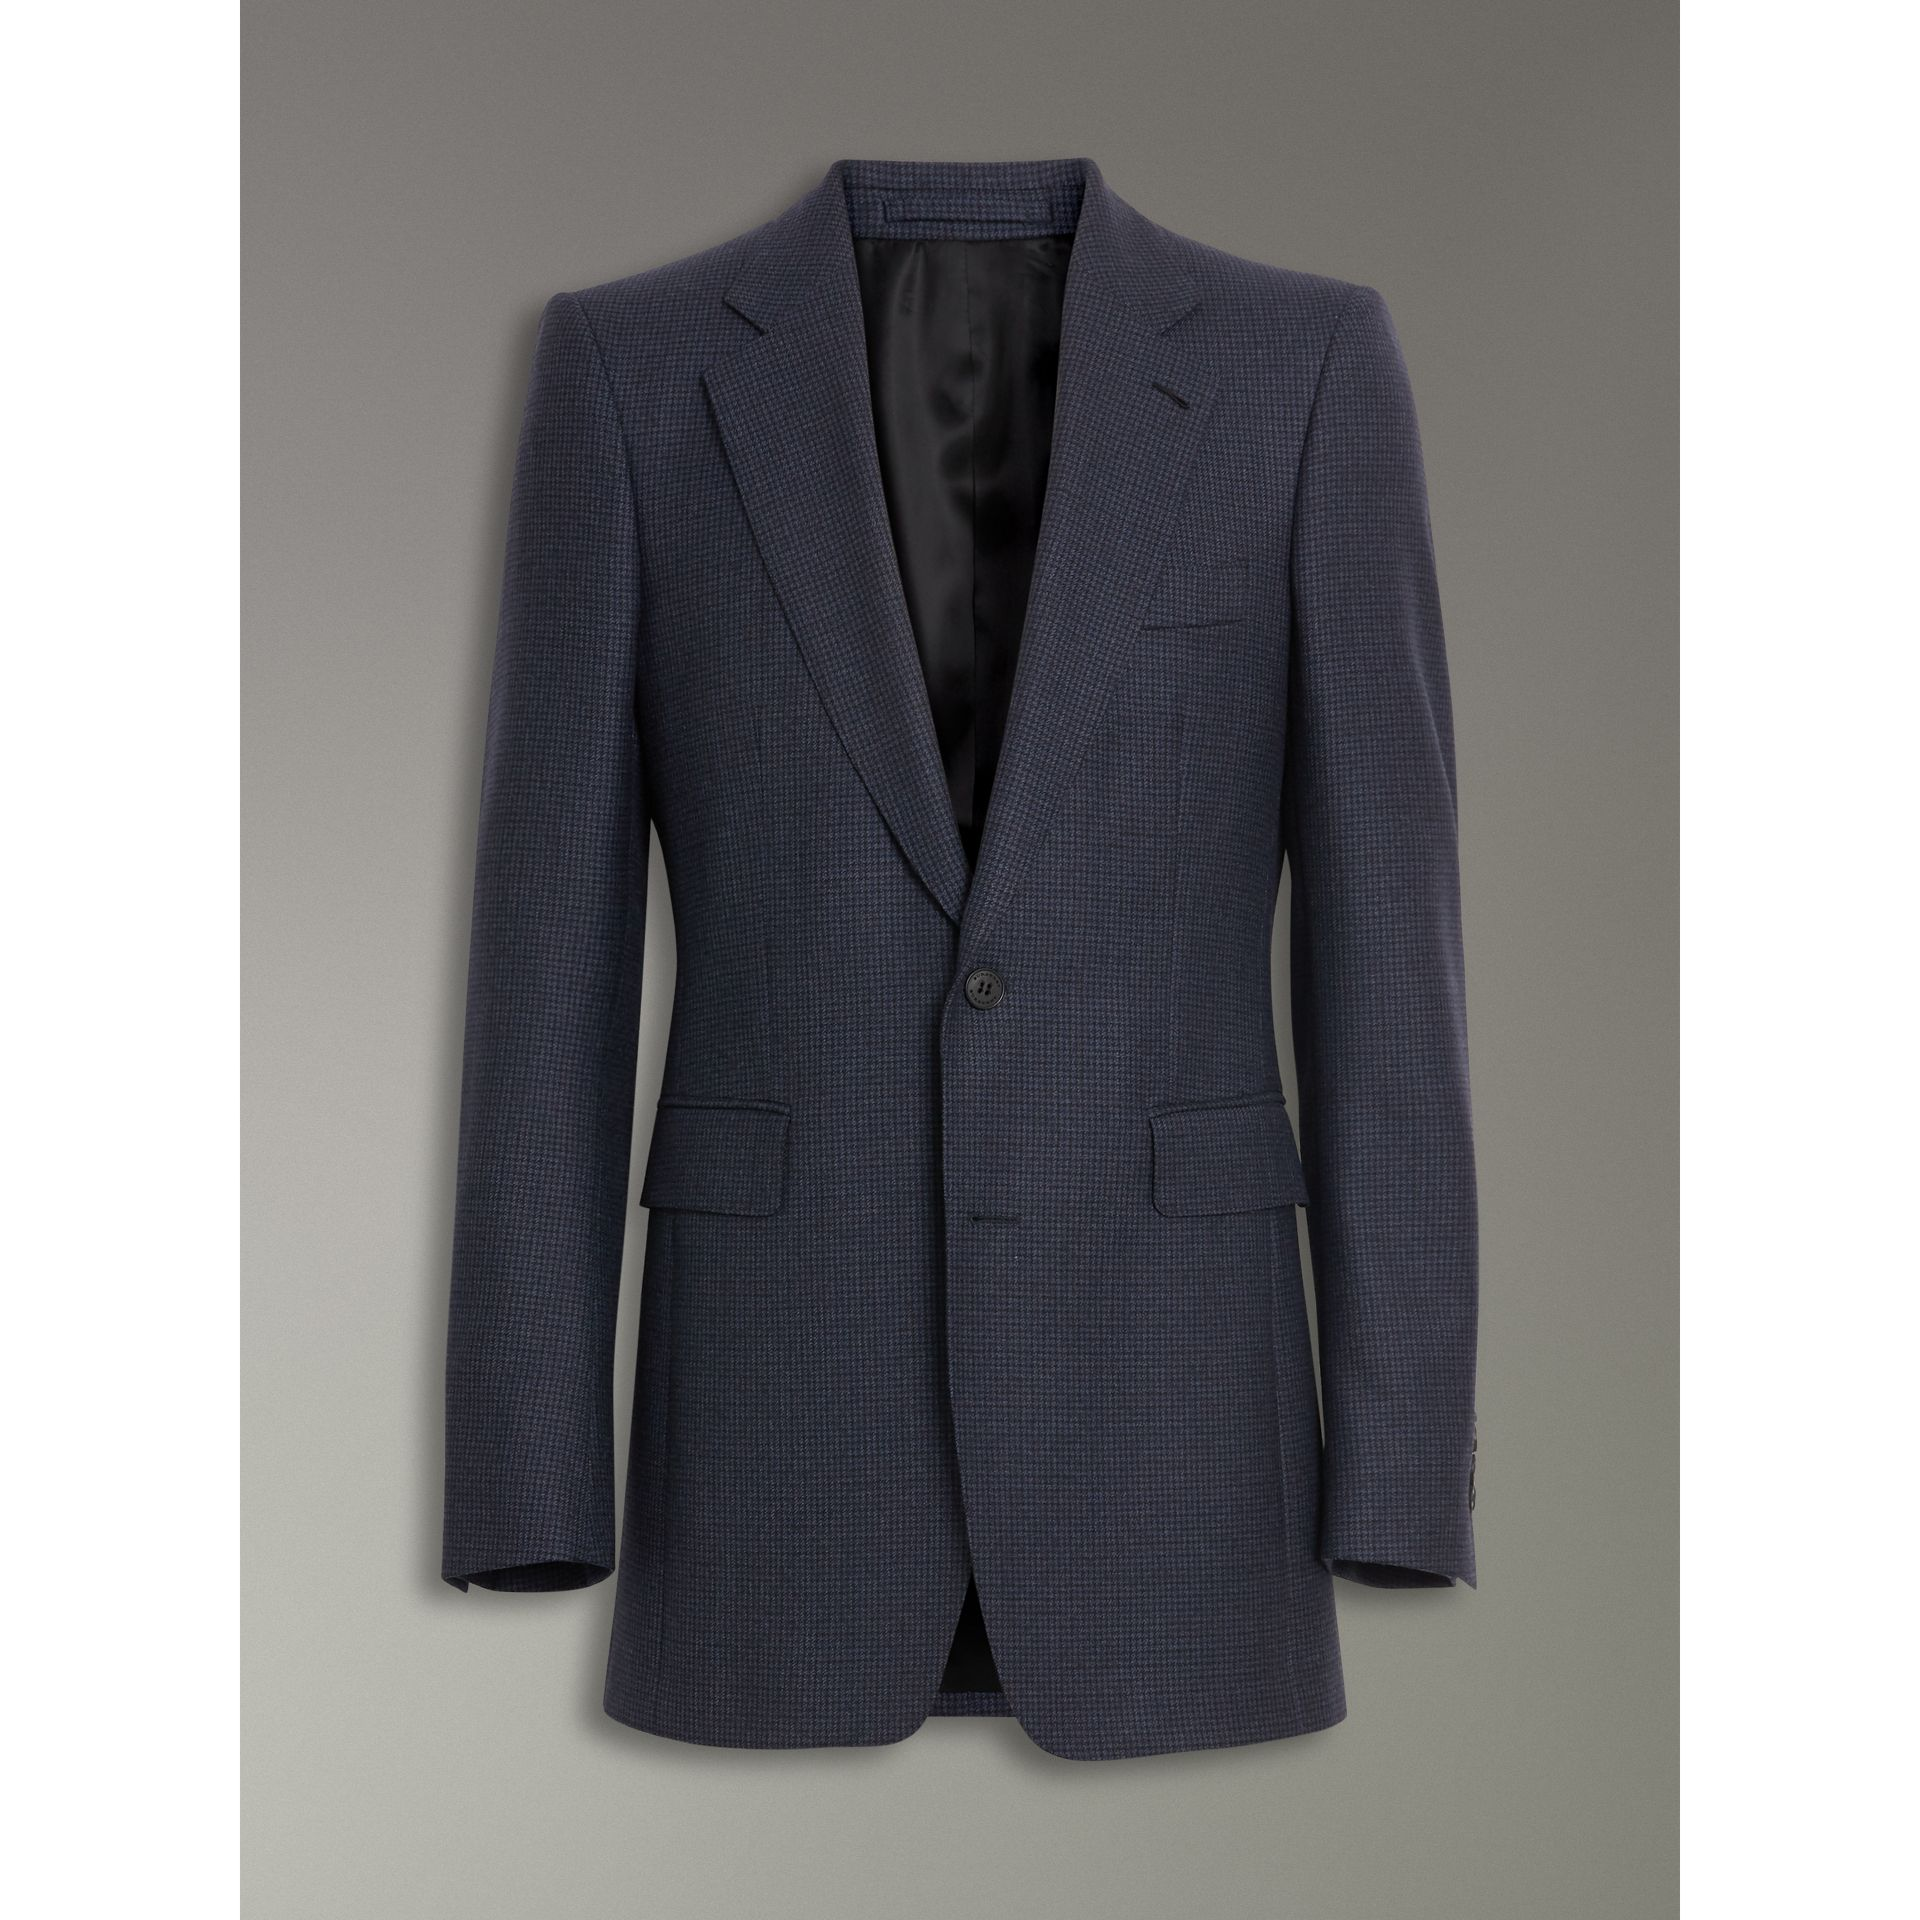 Slim Fit Puppytooth Wool Suit in Navy - Men | Burberry Hong Kong - gallery image 3